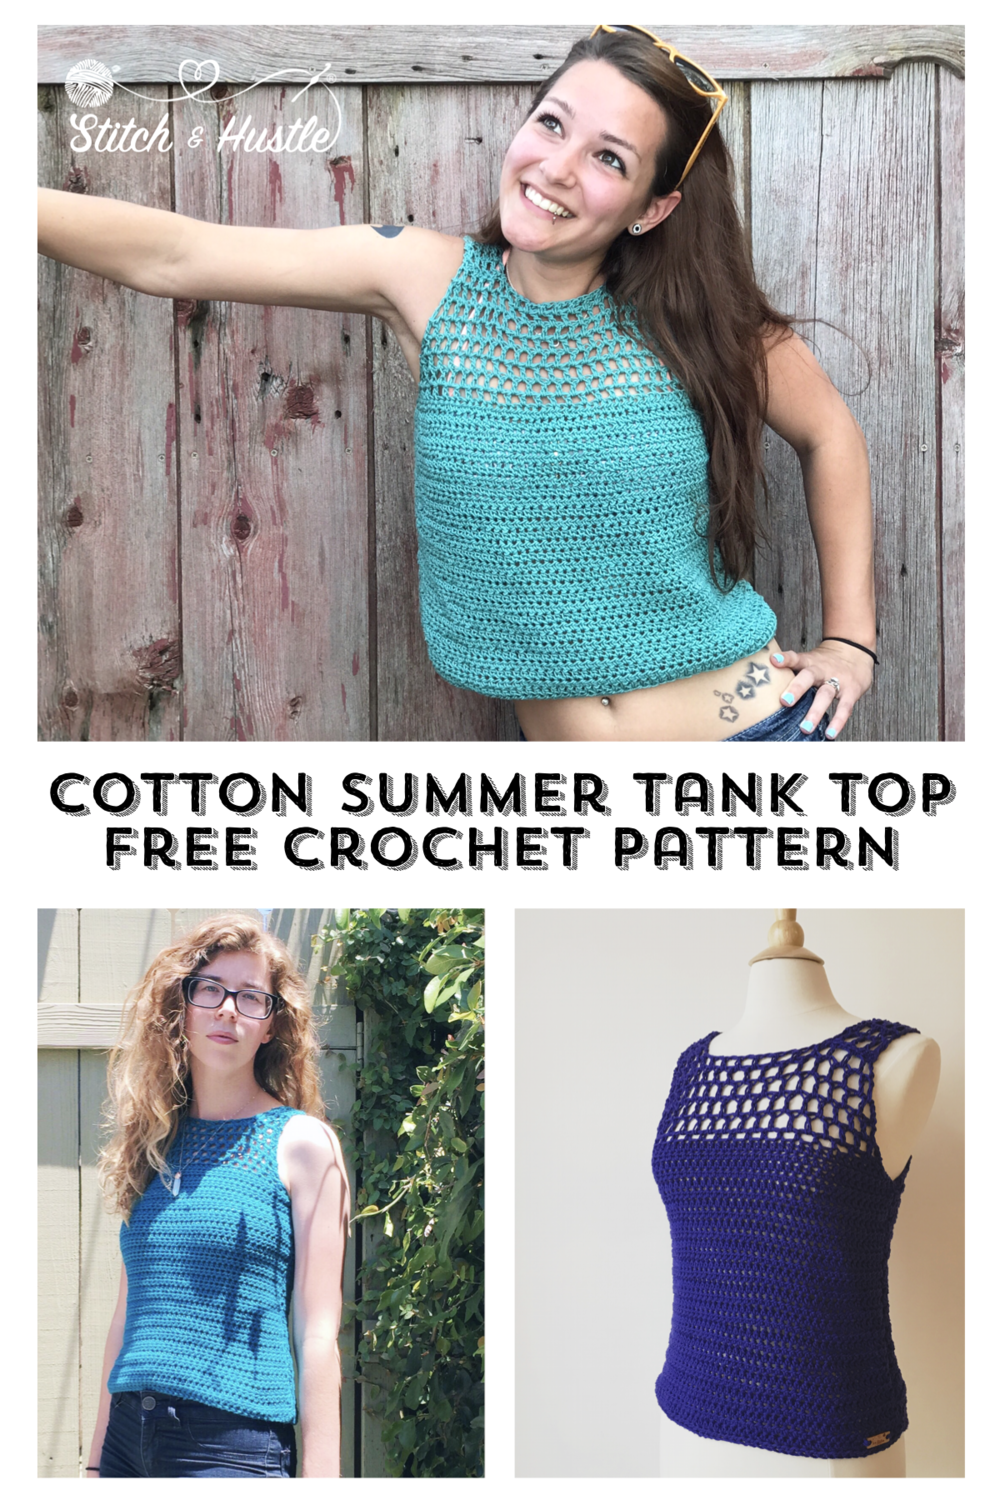 Catalina Crochet Tank Top Free Pattern Stitch Hustle